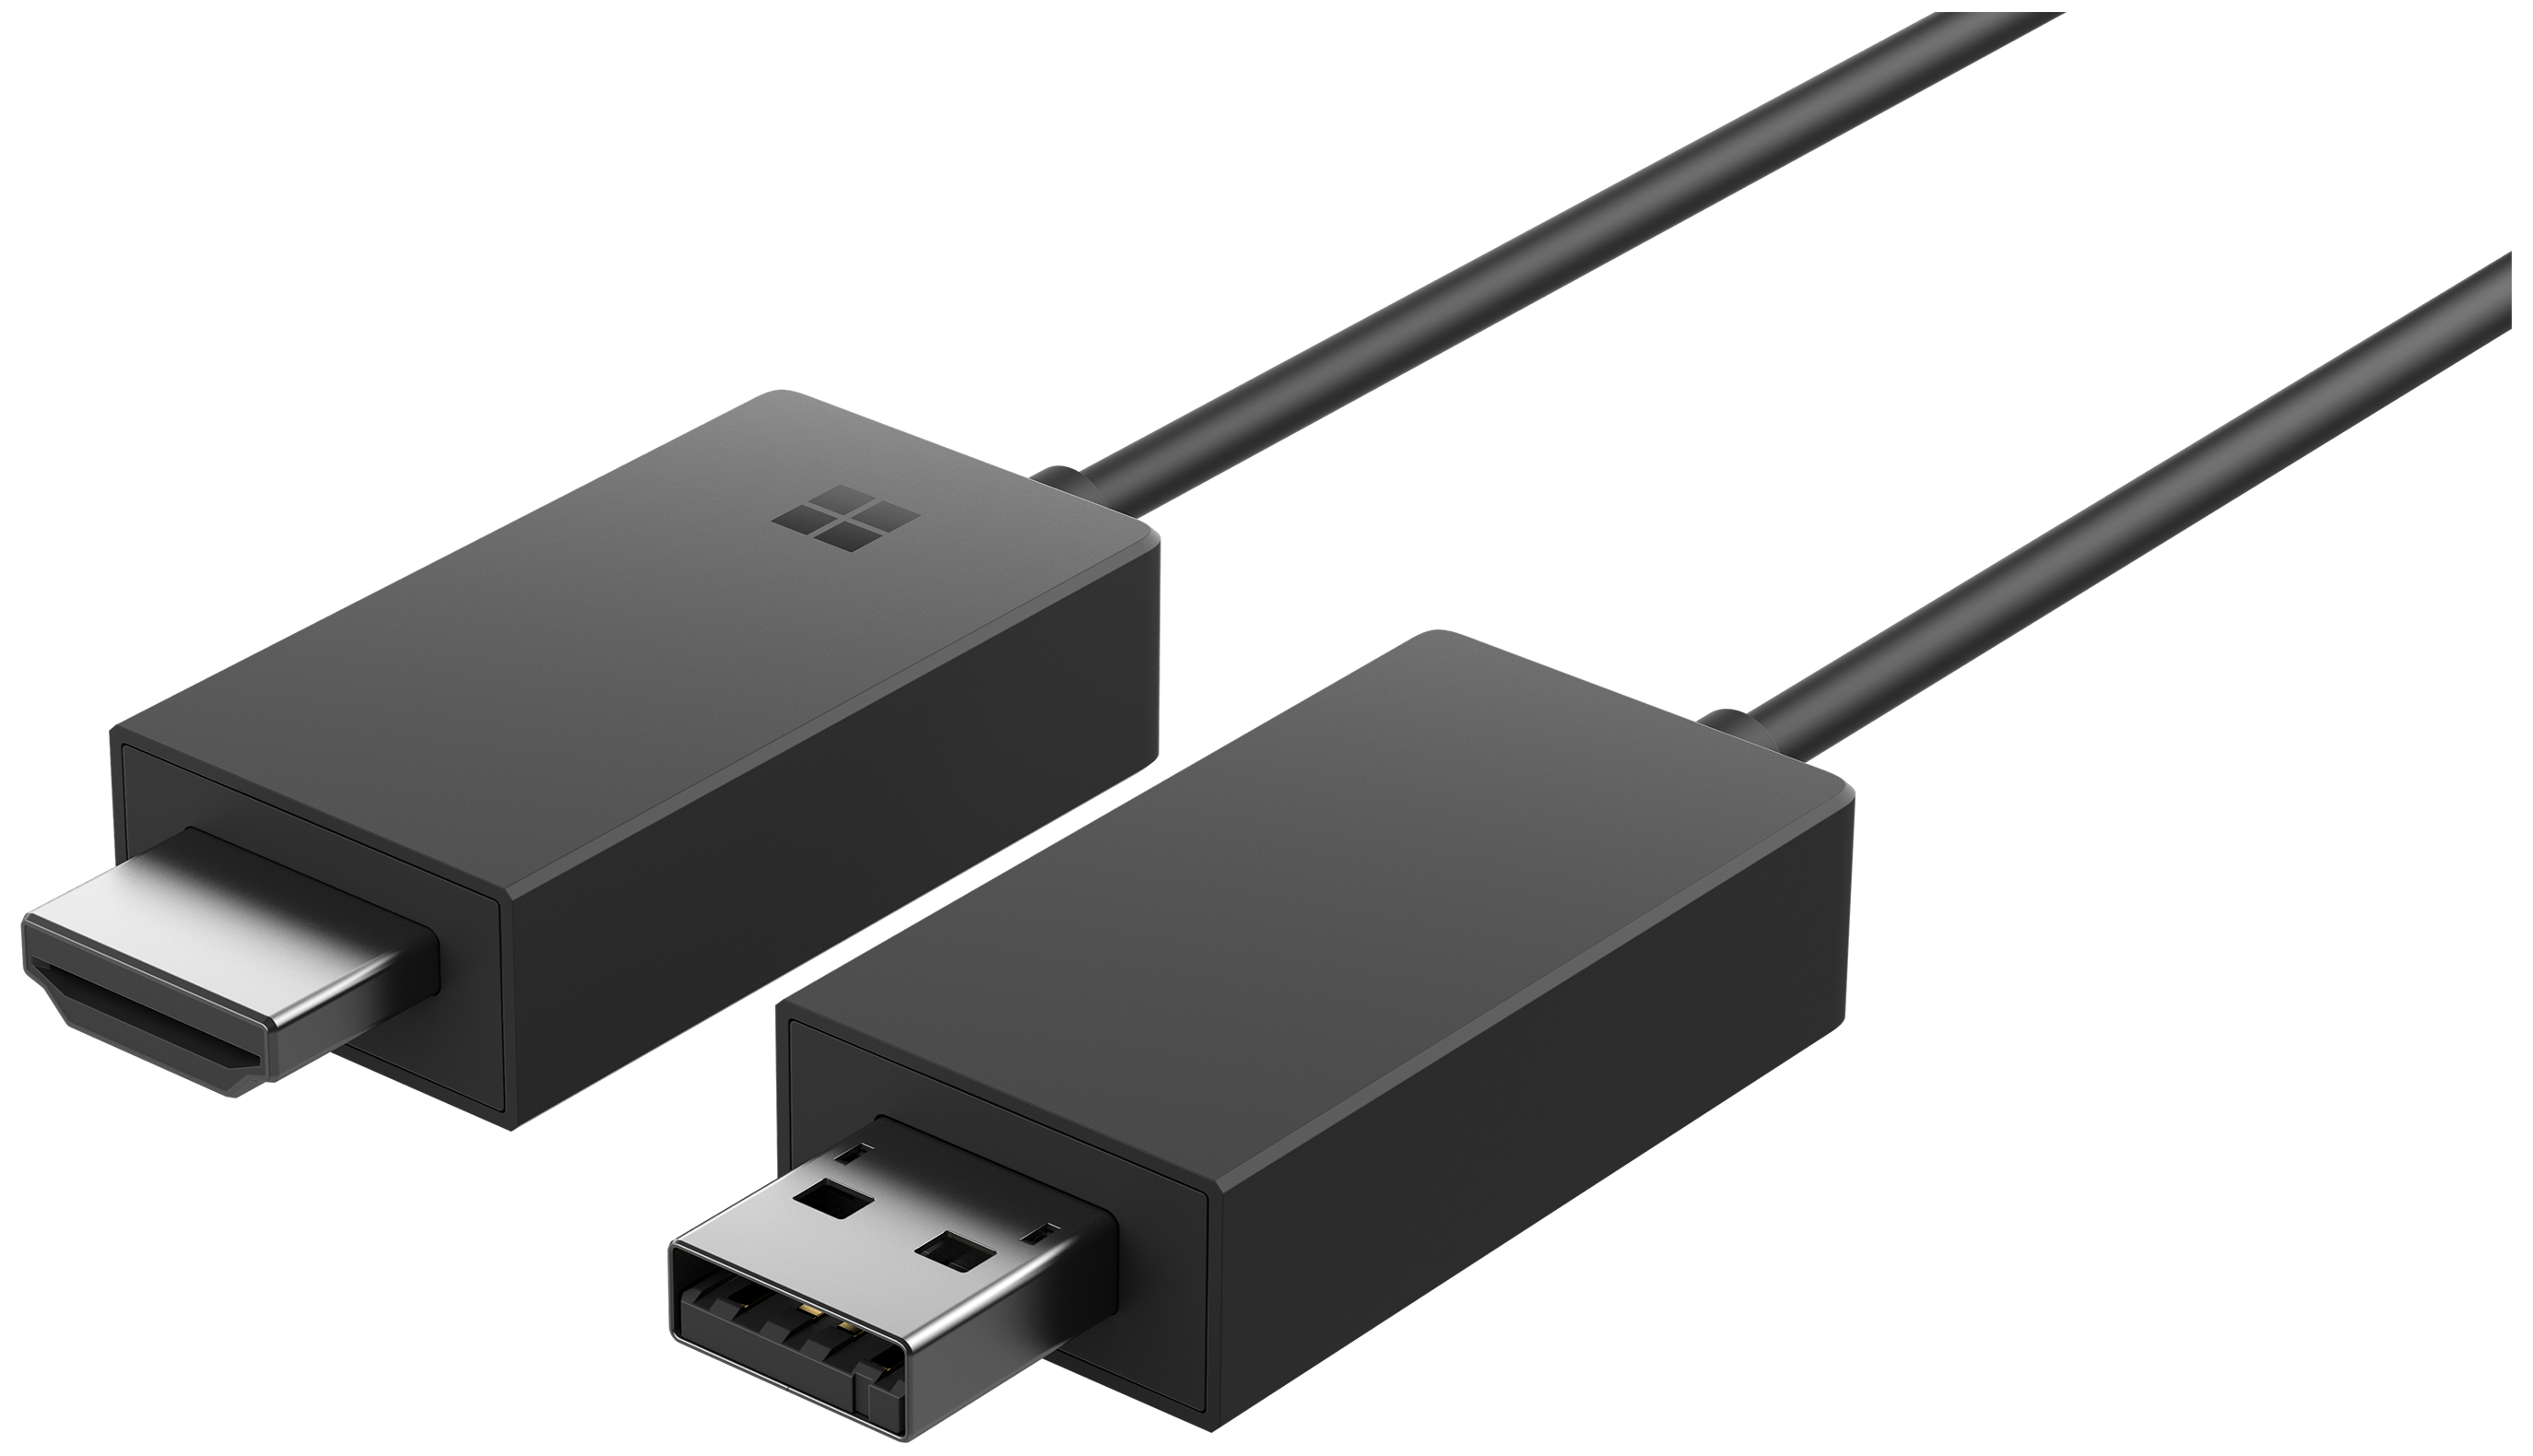 microsoft-wireless-display-adapter-v2